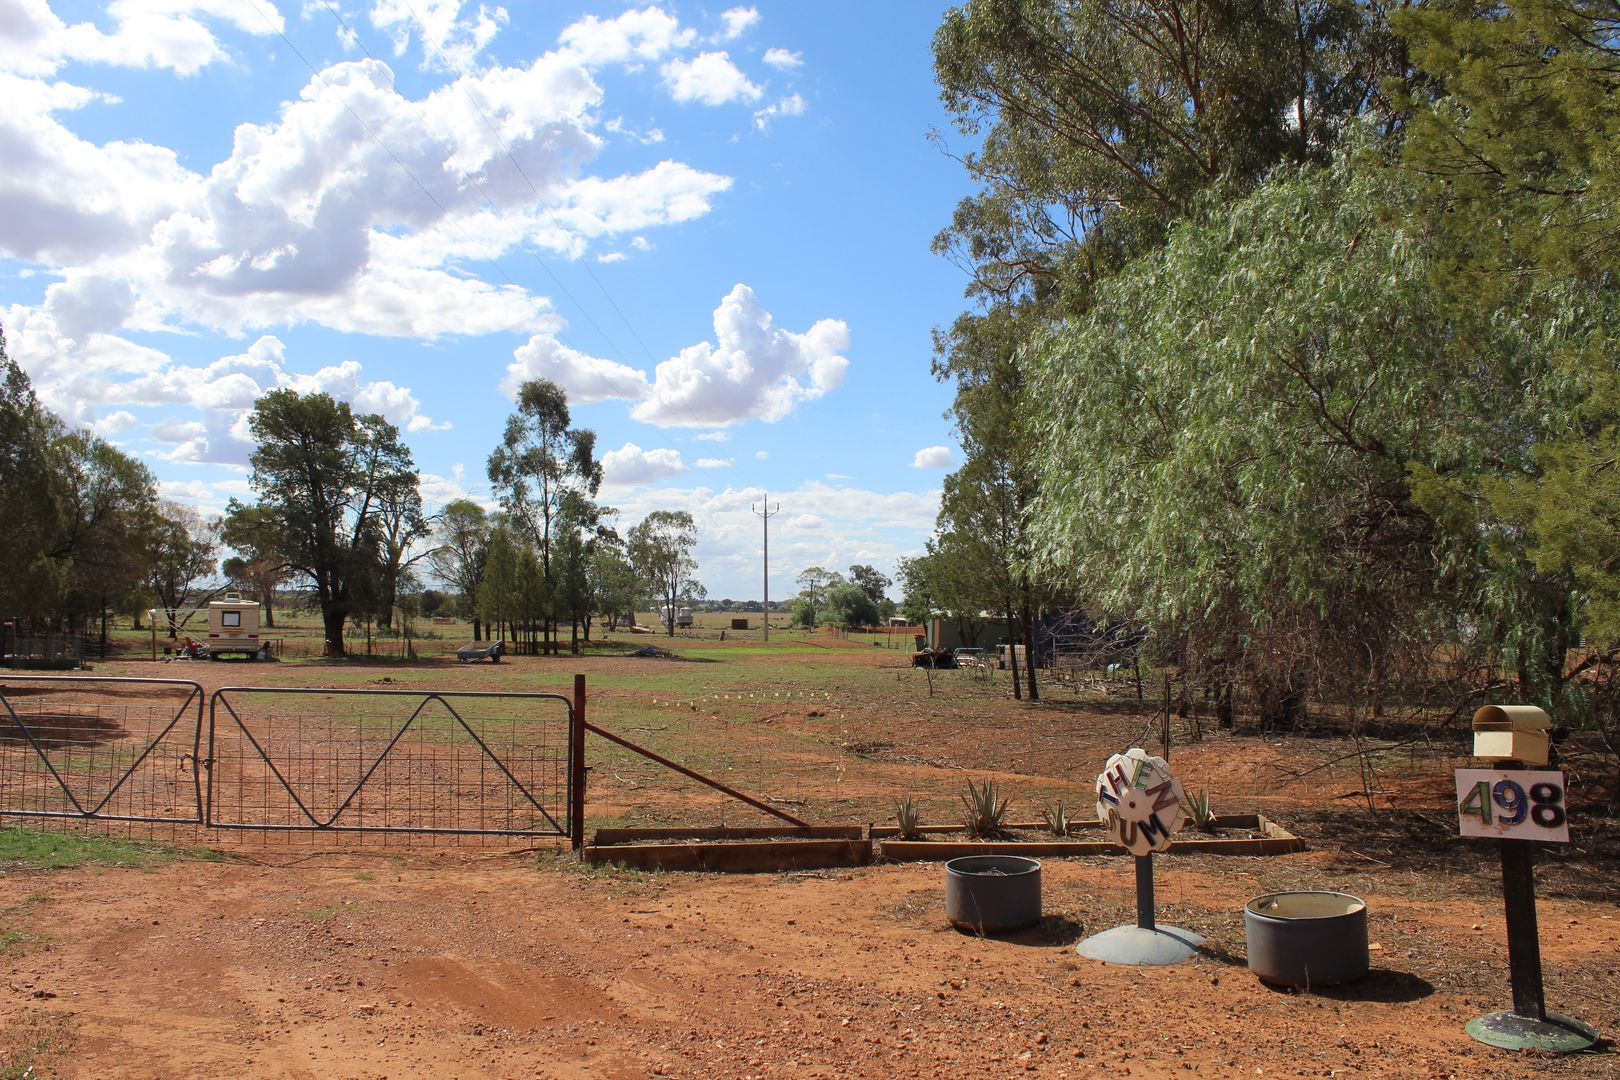 Lot 498 Bivana Street, Peak Hill NSW 2869, Image 1